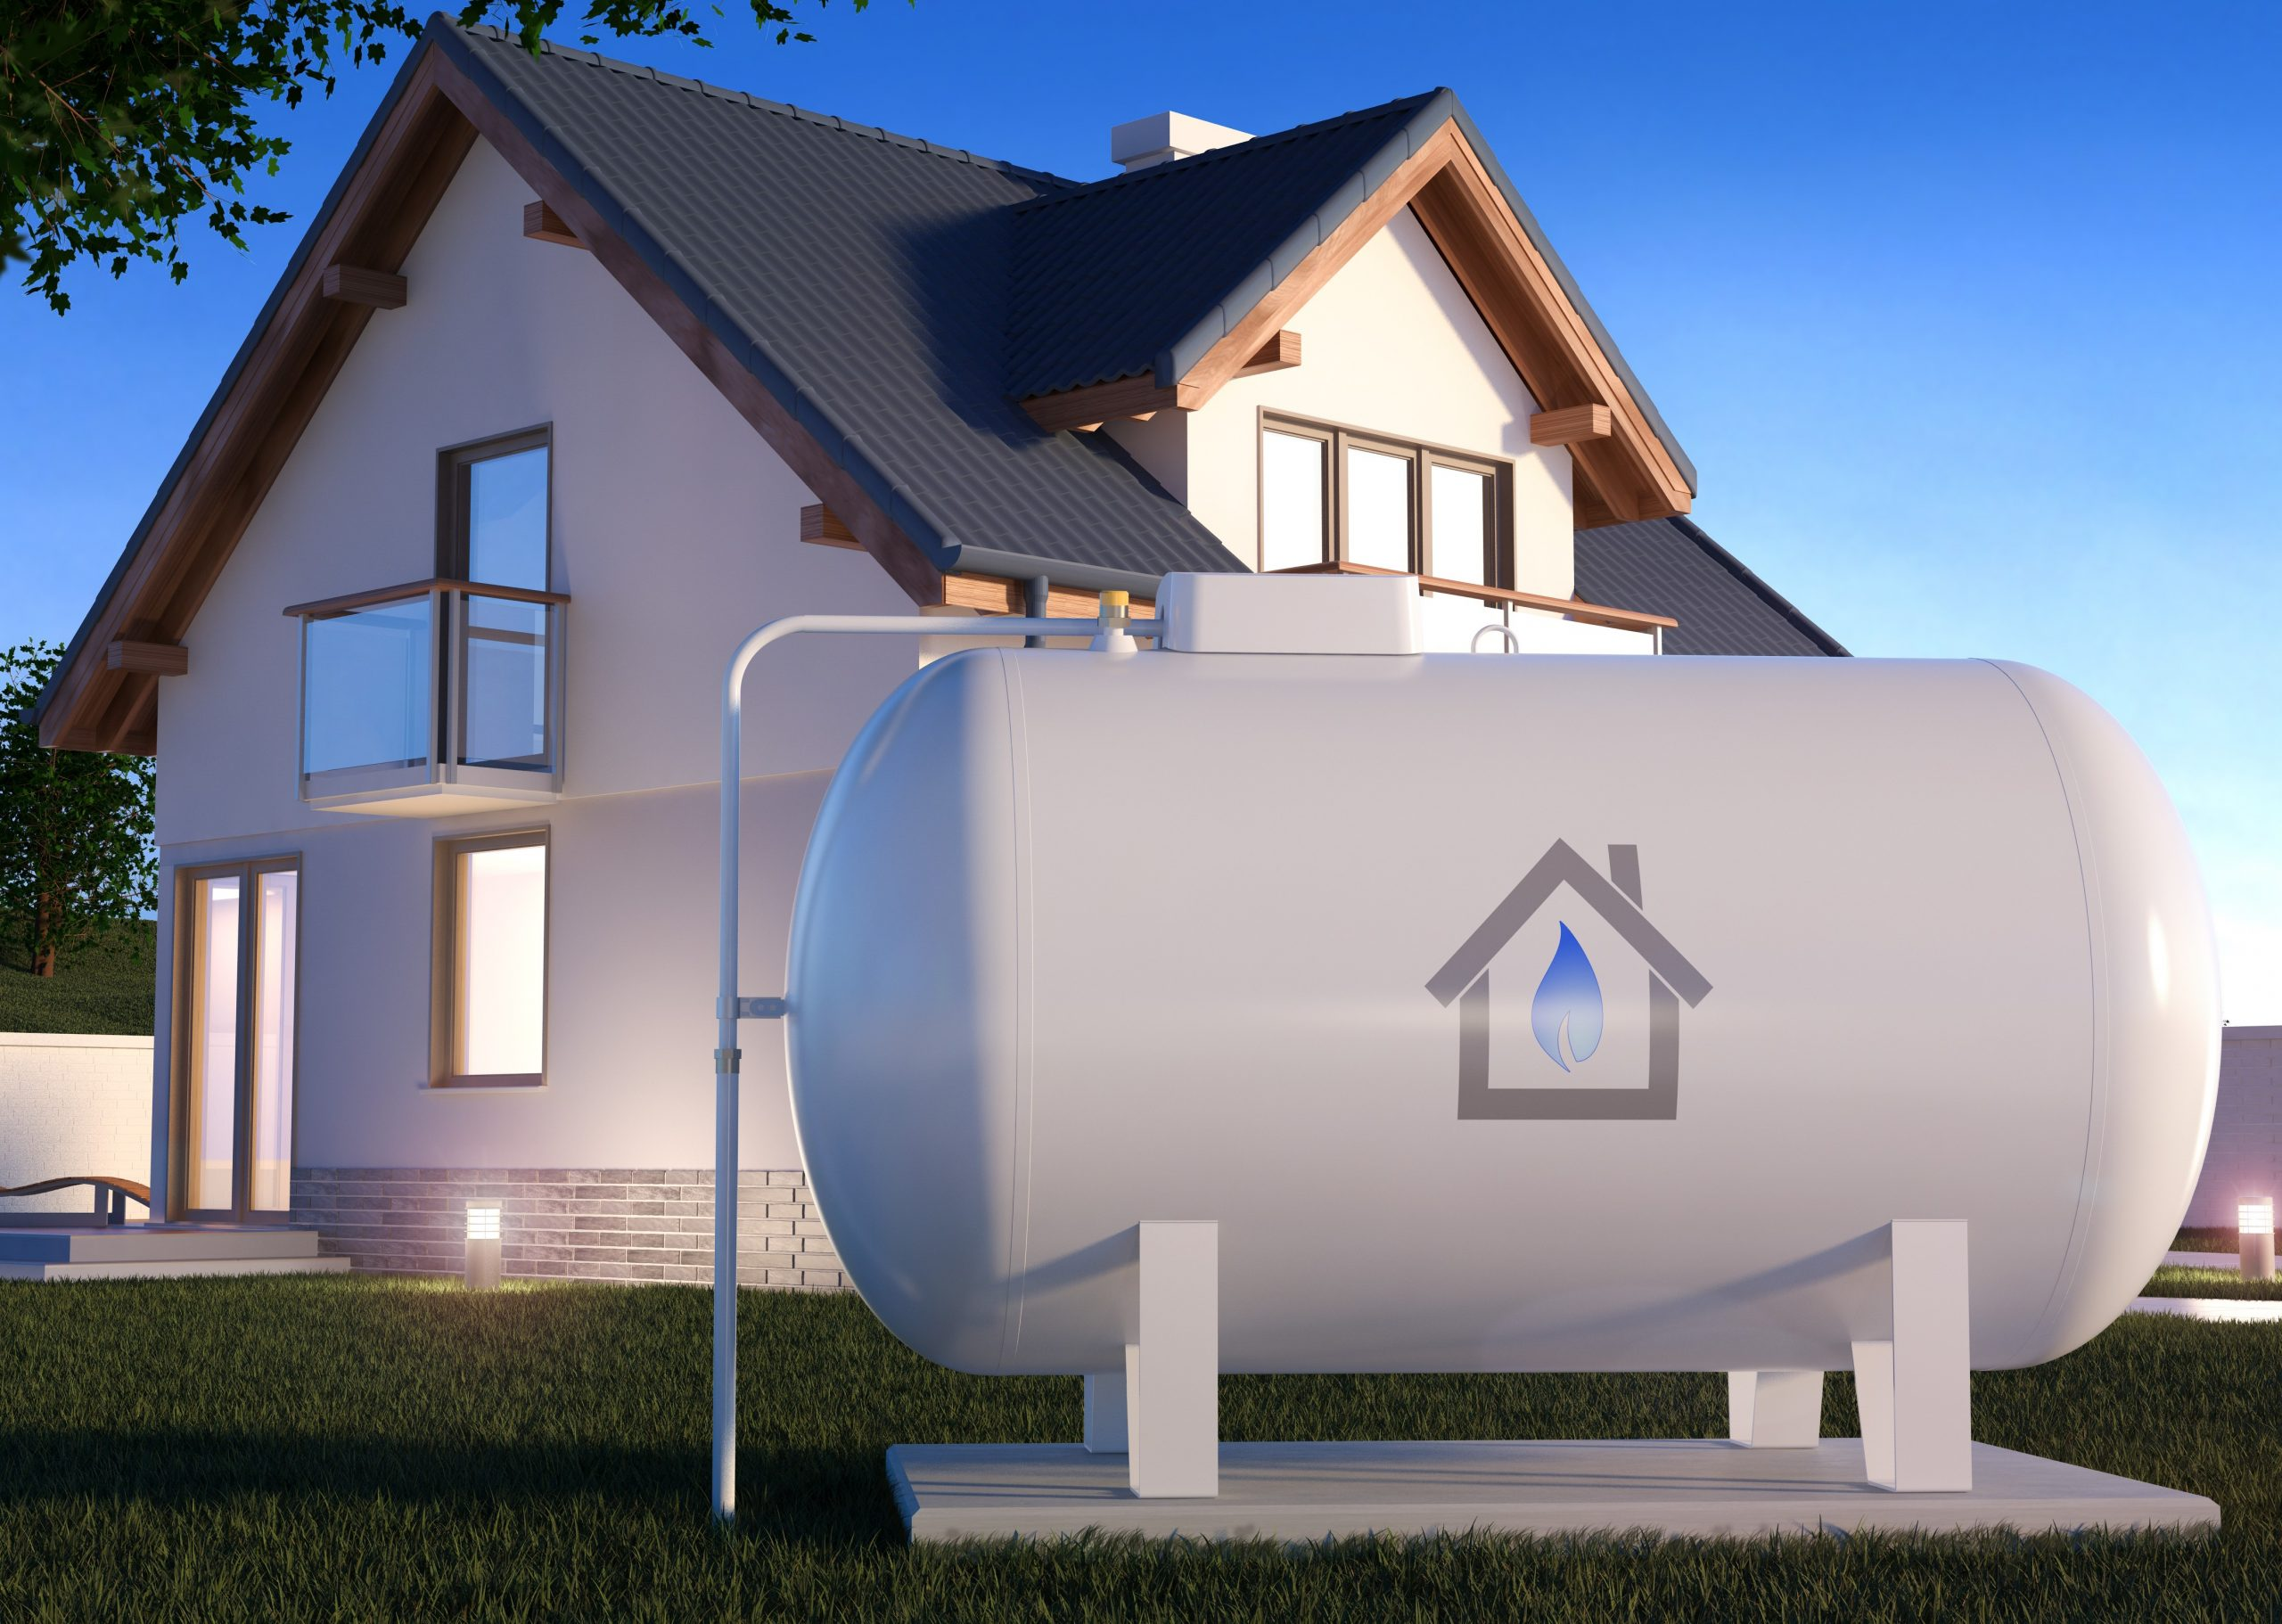 How Propane Fits into An Energy-Diverse Future